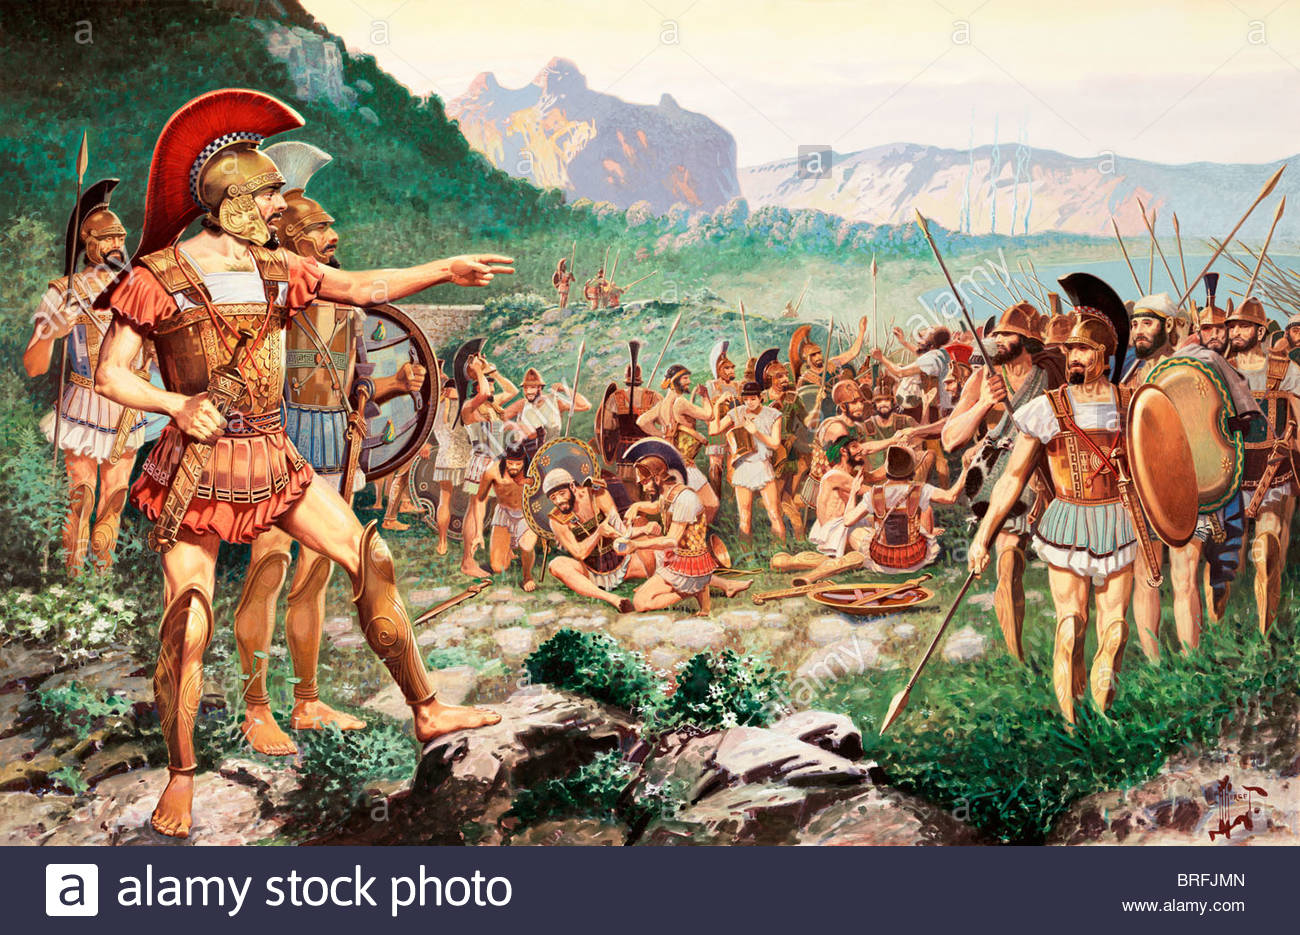 Leonidas bids farewell to allies before the battle at Thermopylae. - Stock Image